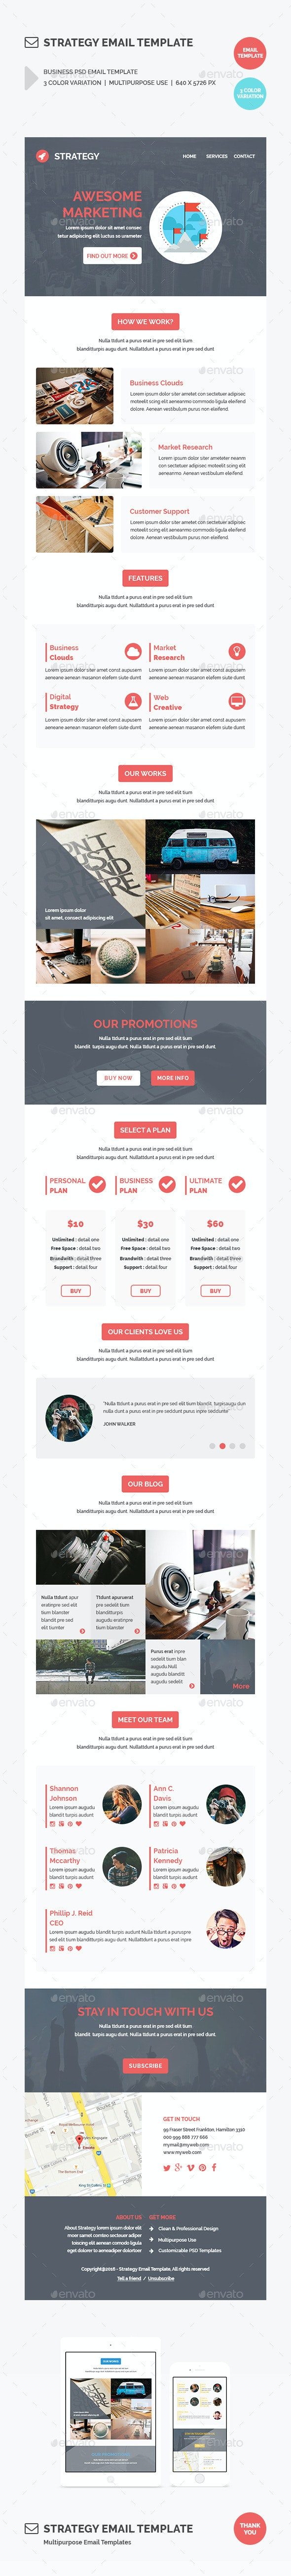 Strategy Email Template - E-newsletters Web Elements